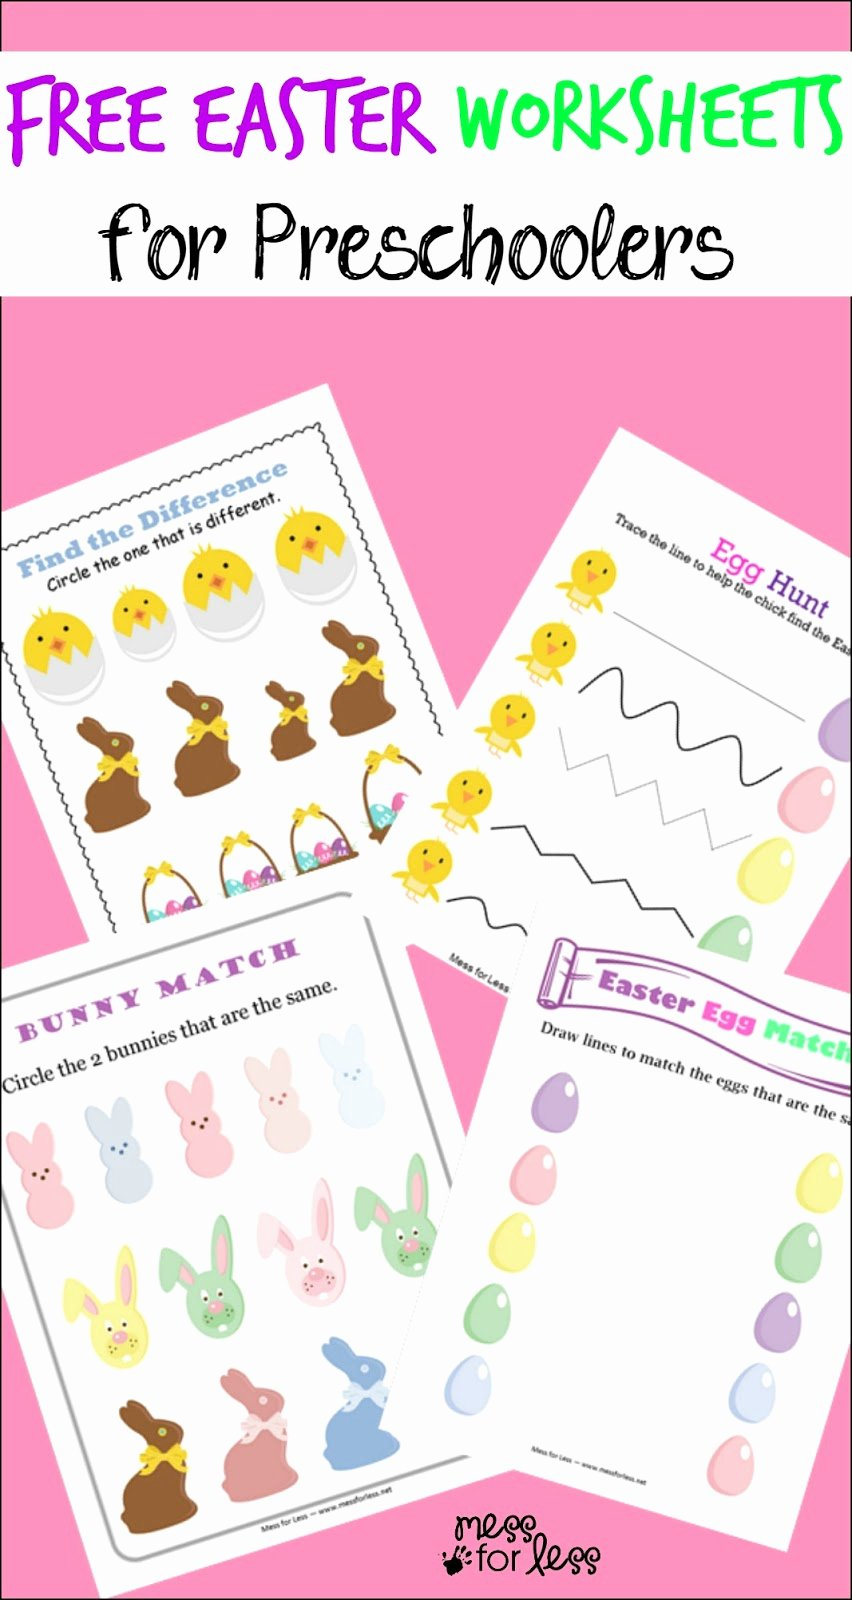 Printable Easter Worksheets for Preschoolers Beautiful Free Easter Preschool Worksheets Mess for Less